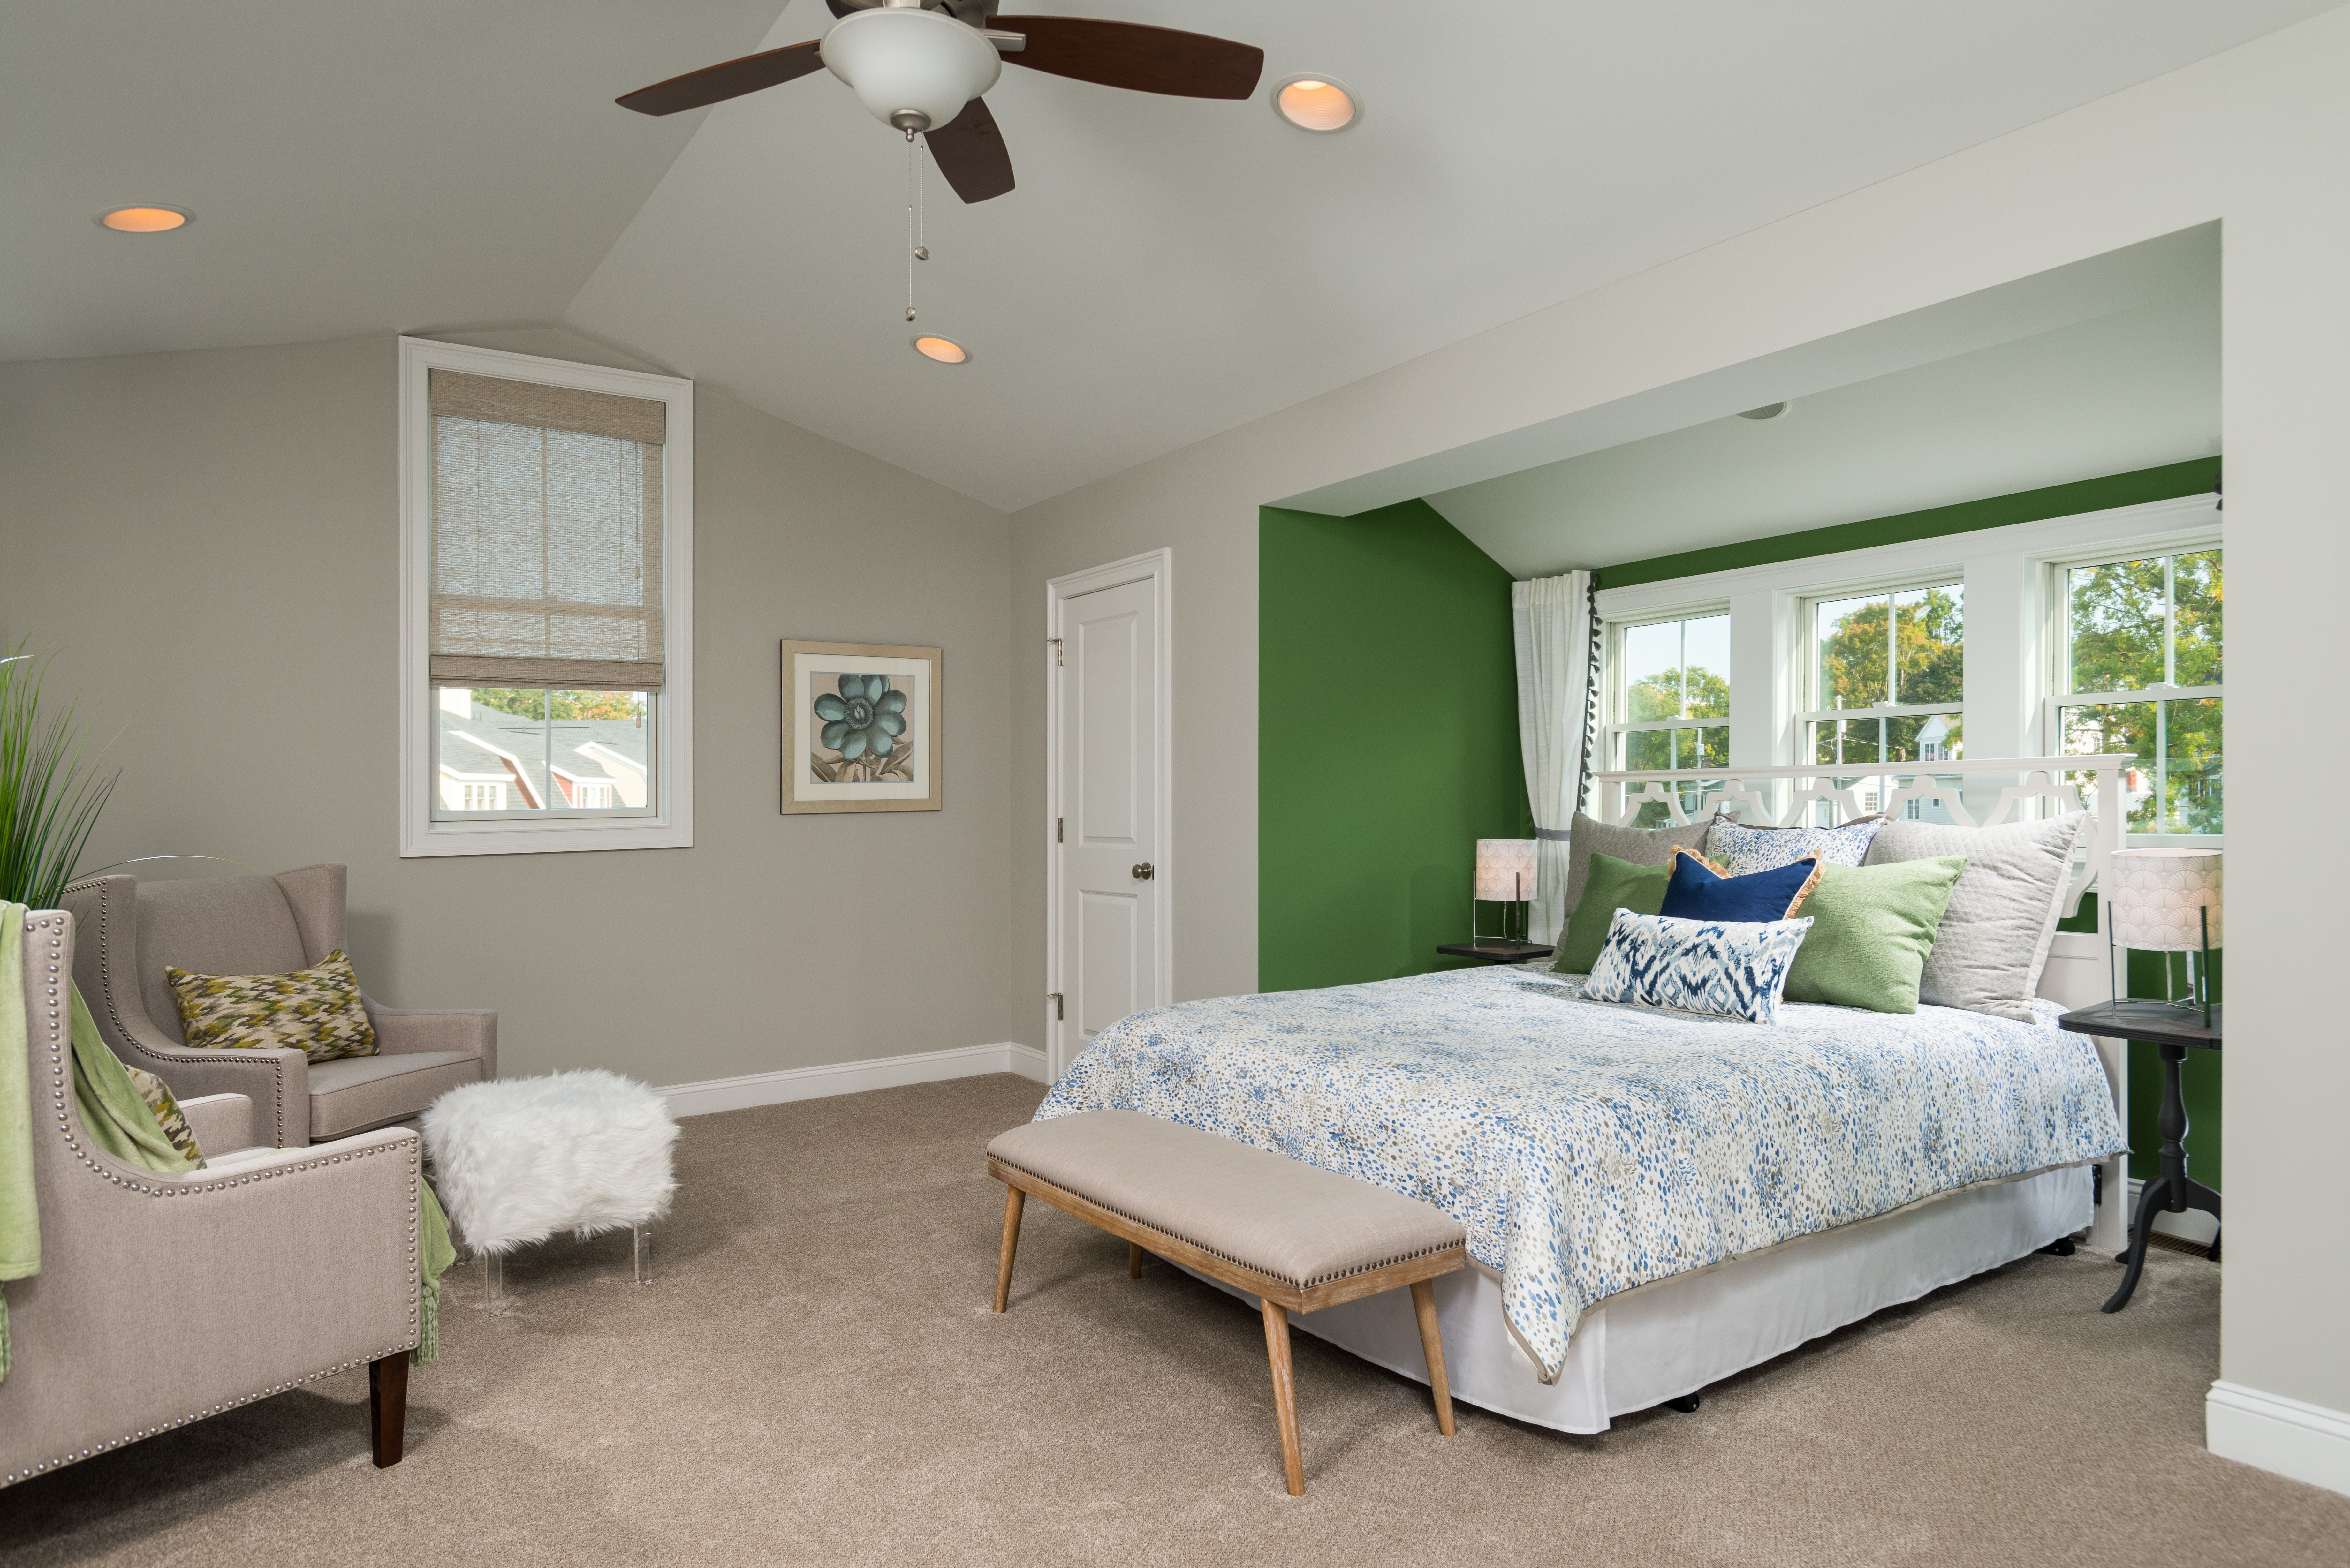 Bedroom featured in the City Square Townhome By Belmonte Builders in Albany-Saratoga, NY